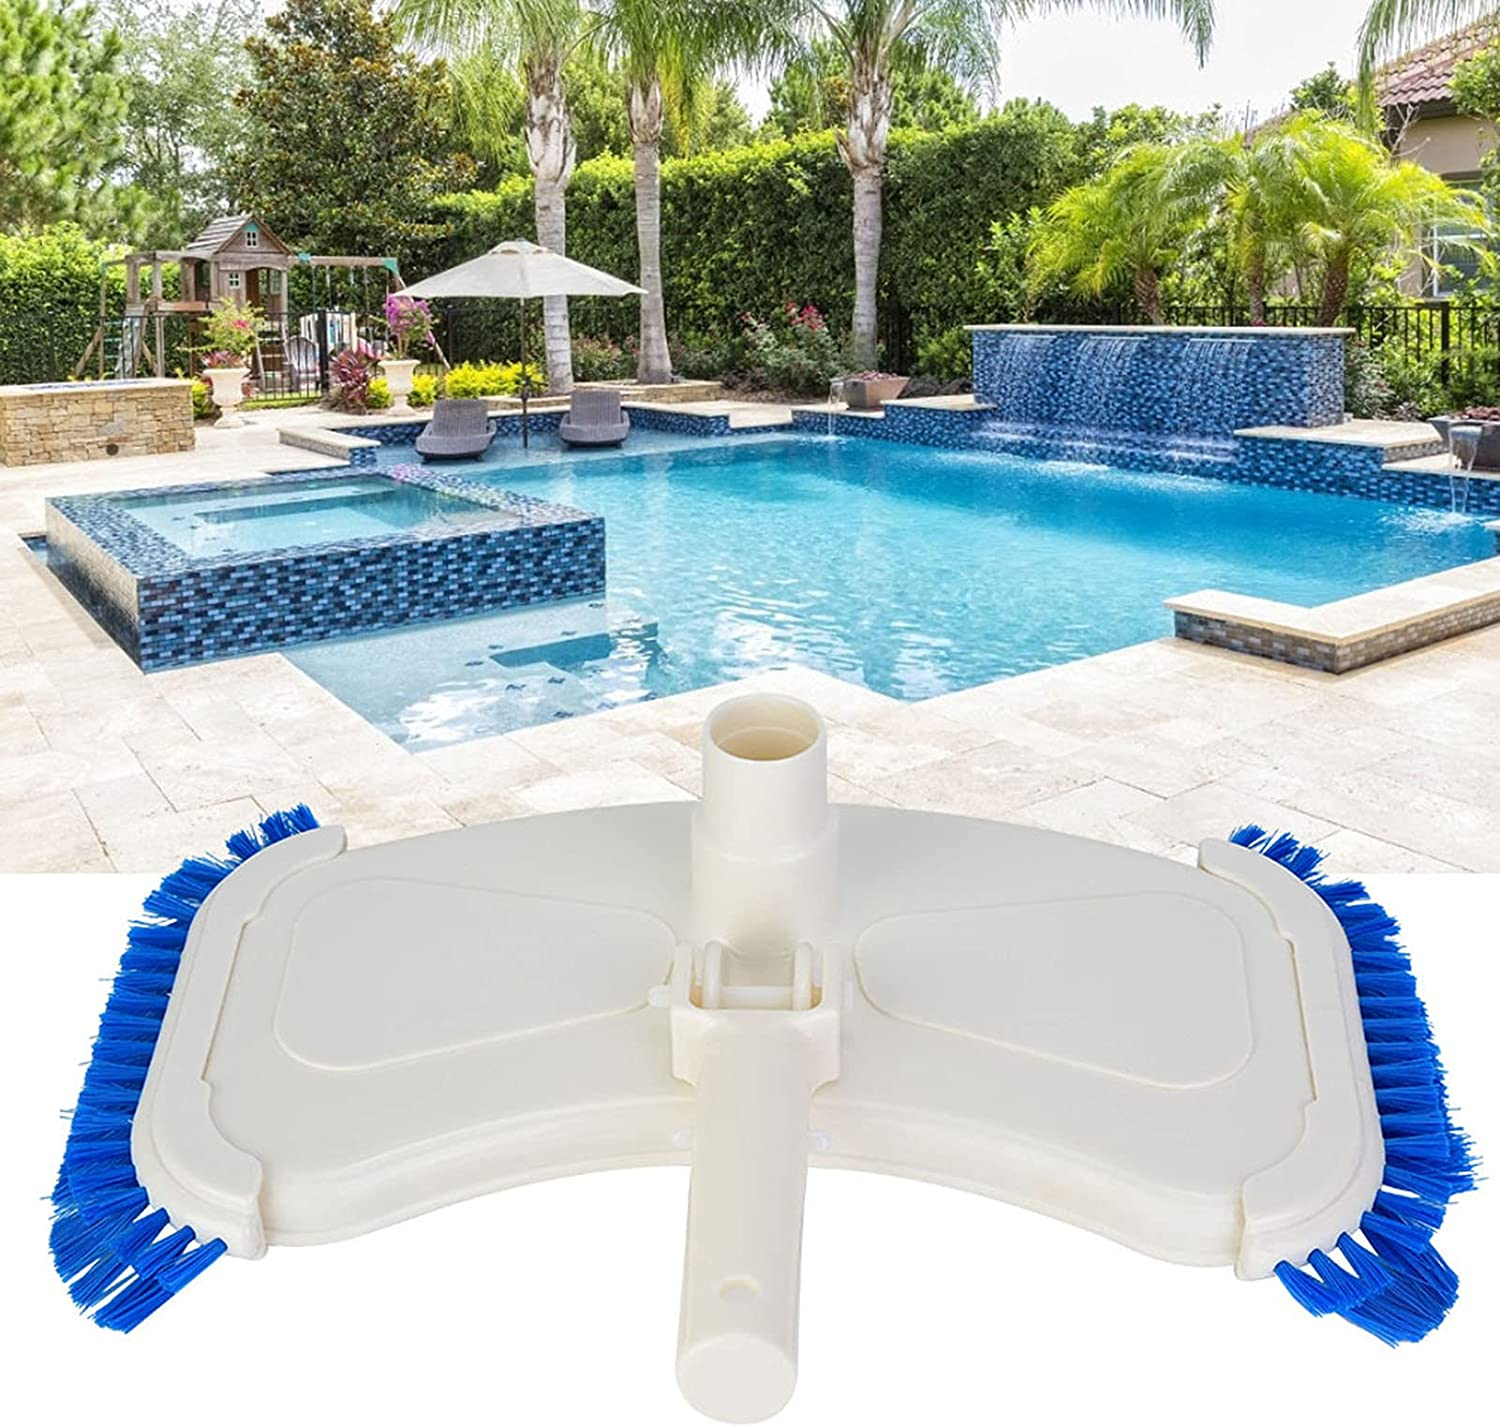 XQAQX Max 48% OFF Pool Cleaning Tool Head Brush Tucson Mall Suction Sw